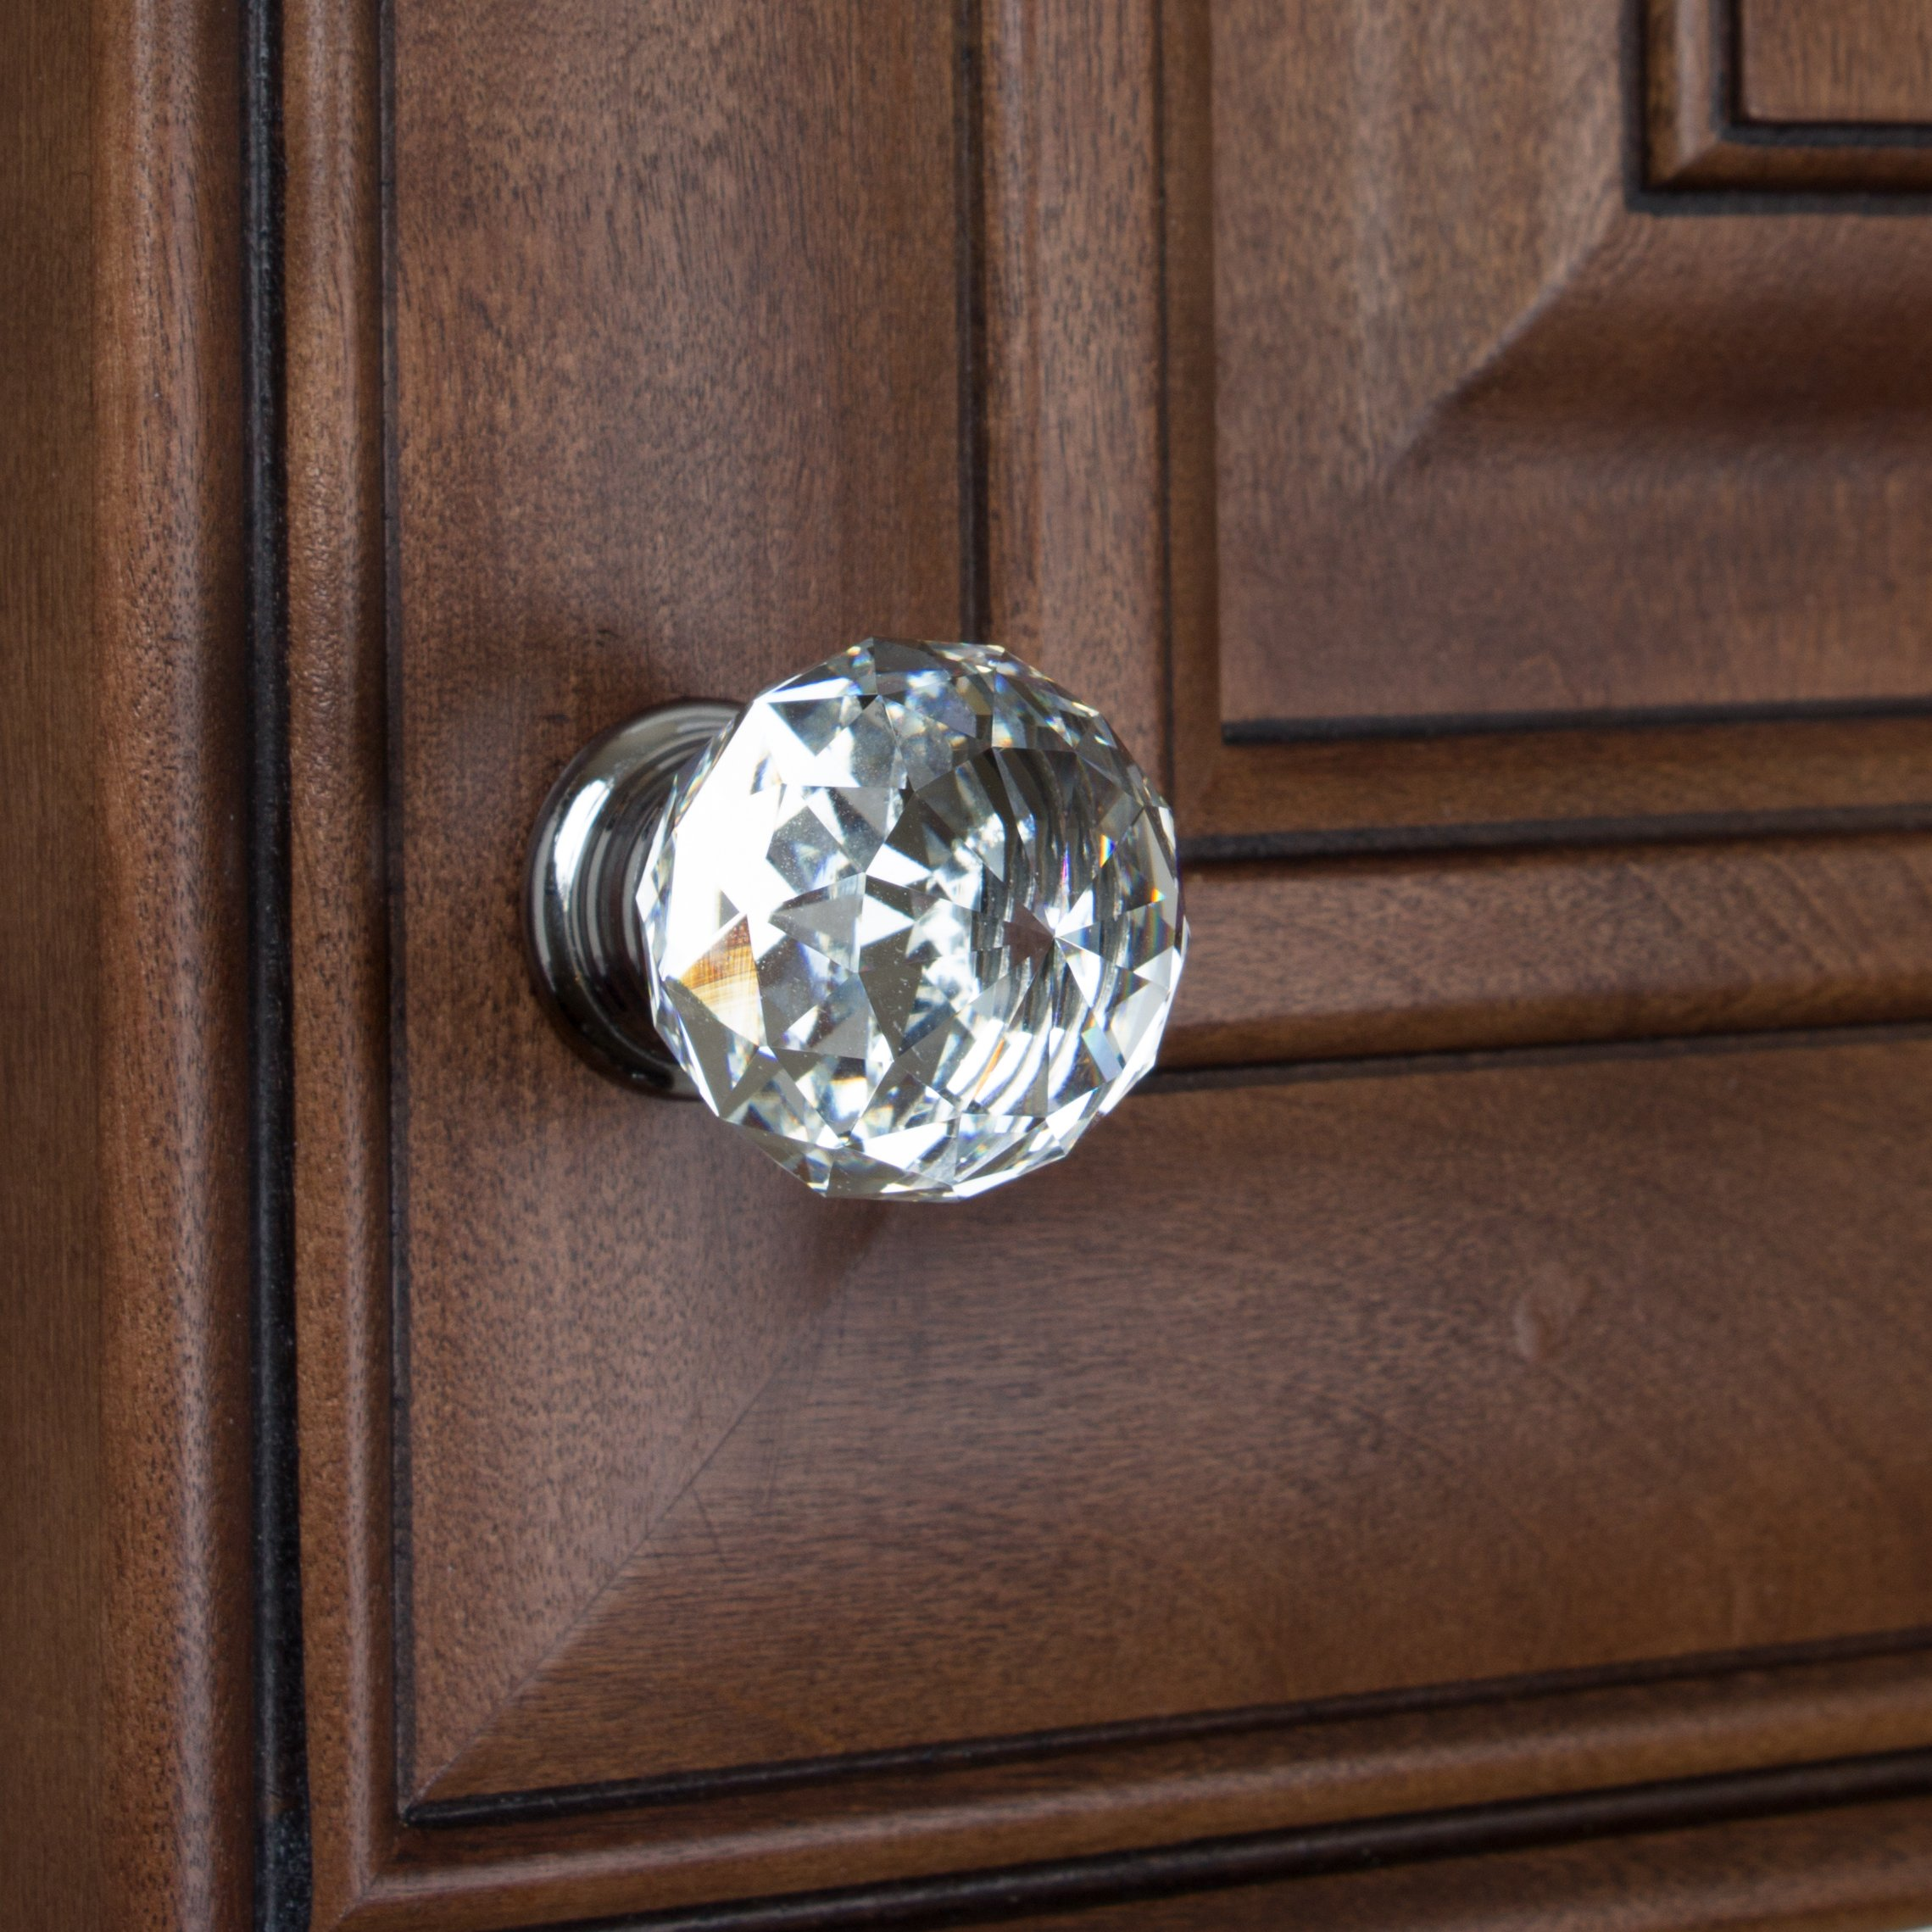 GlideRite Hardware 9003-CR-30-50 K9 Crystal with Polished Chrome Base Cabinet Knobs, 50 Pack, Small, Clear by GlideRite Hardware (Image #4)